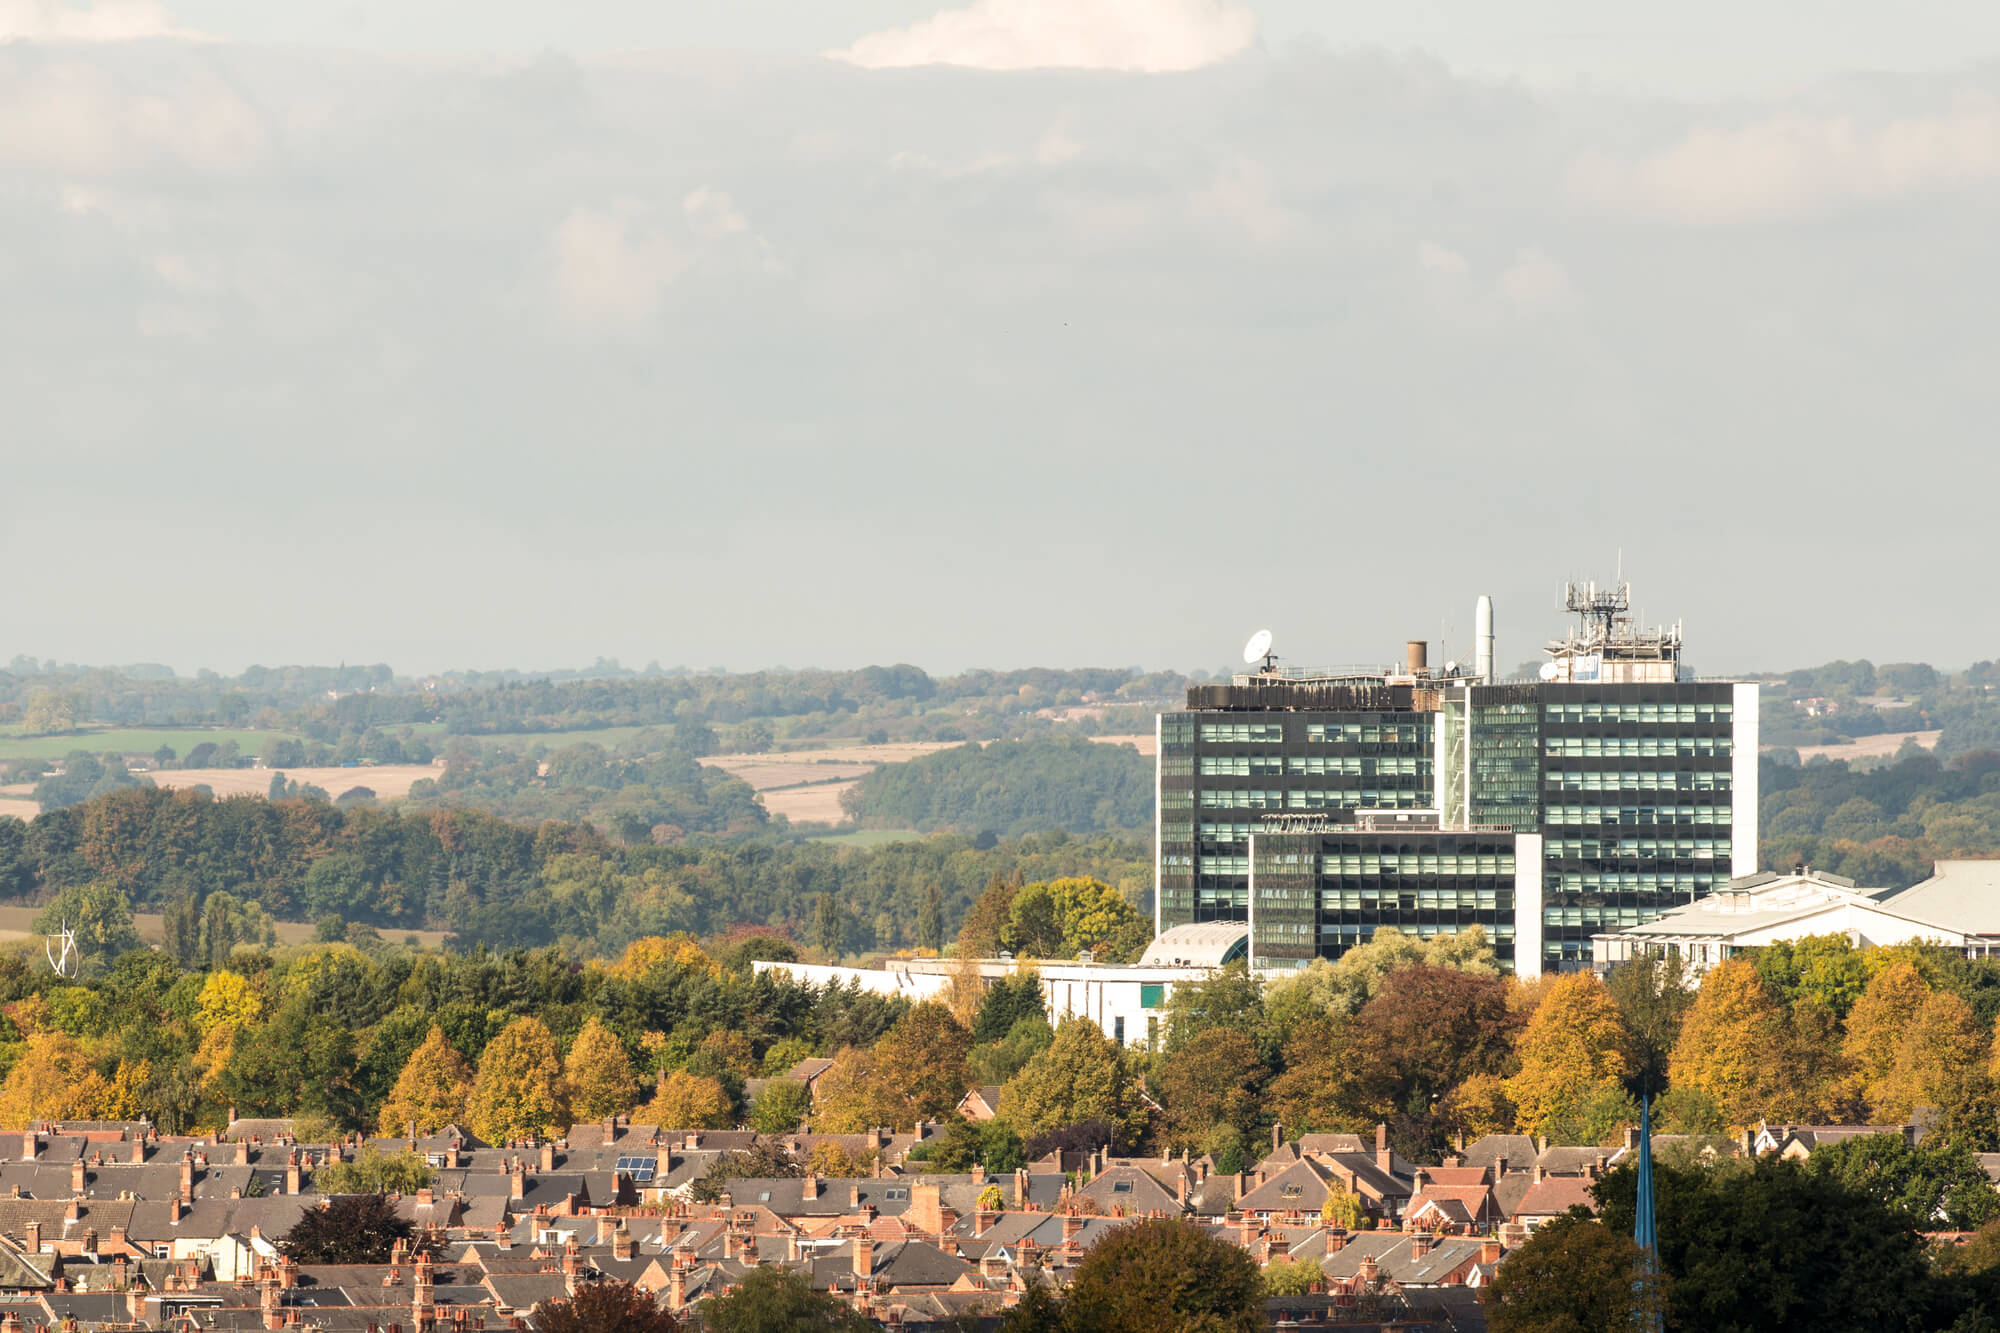 Looking across Derby at the University's Kedleston Road site